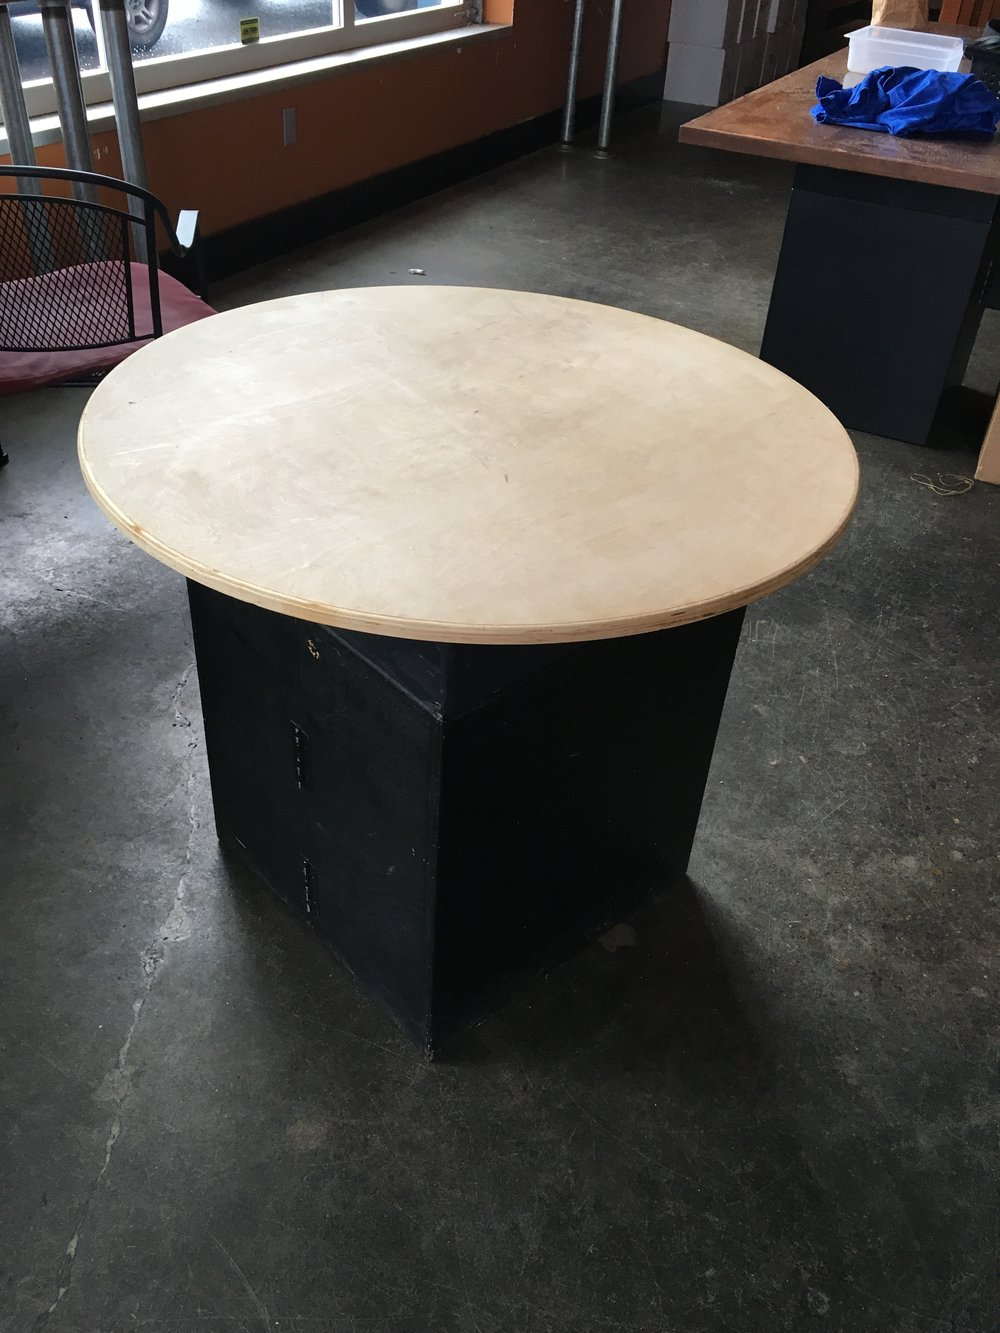 Collapsible table and base